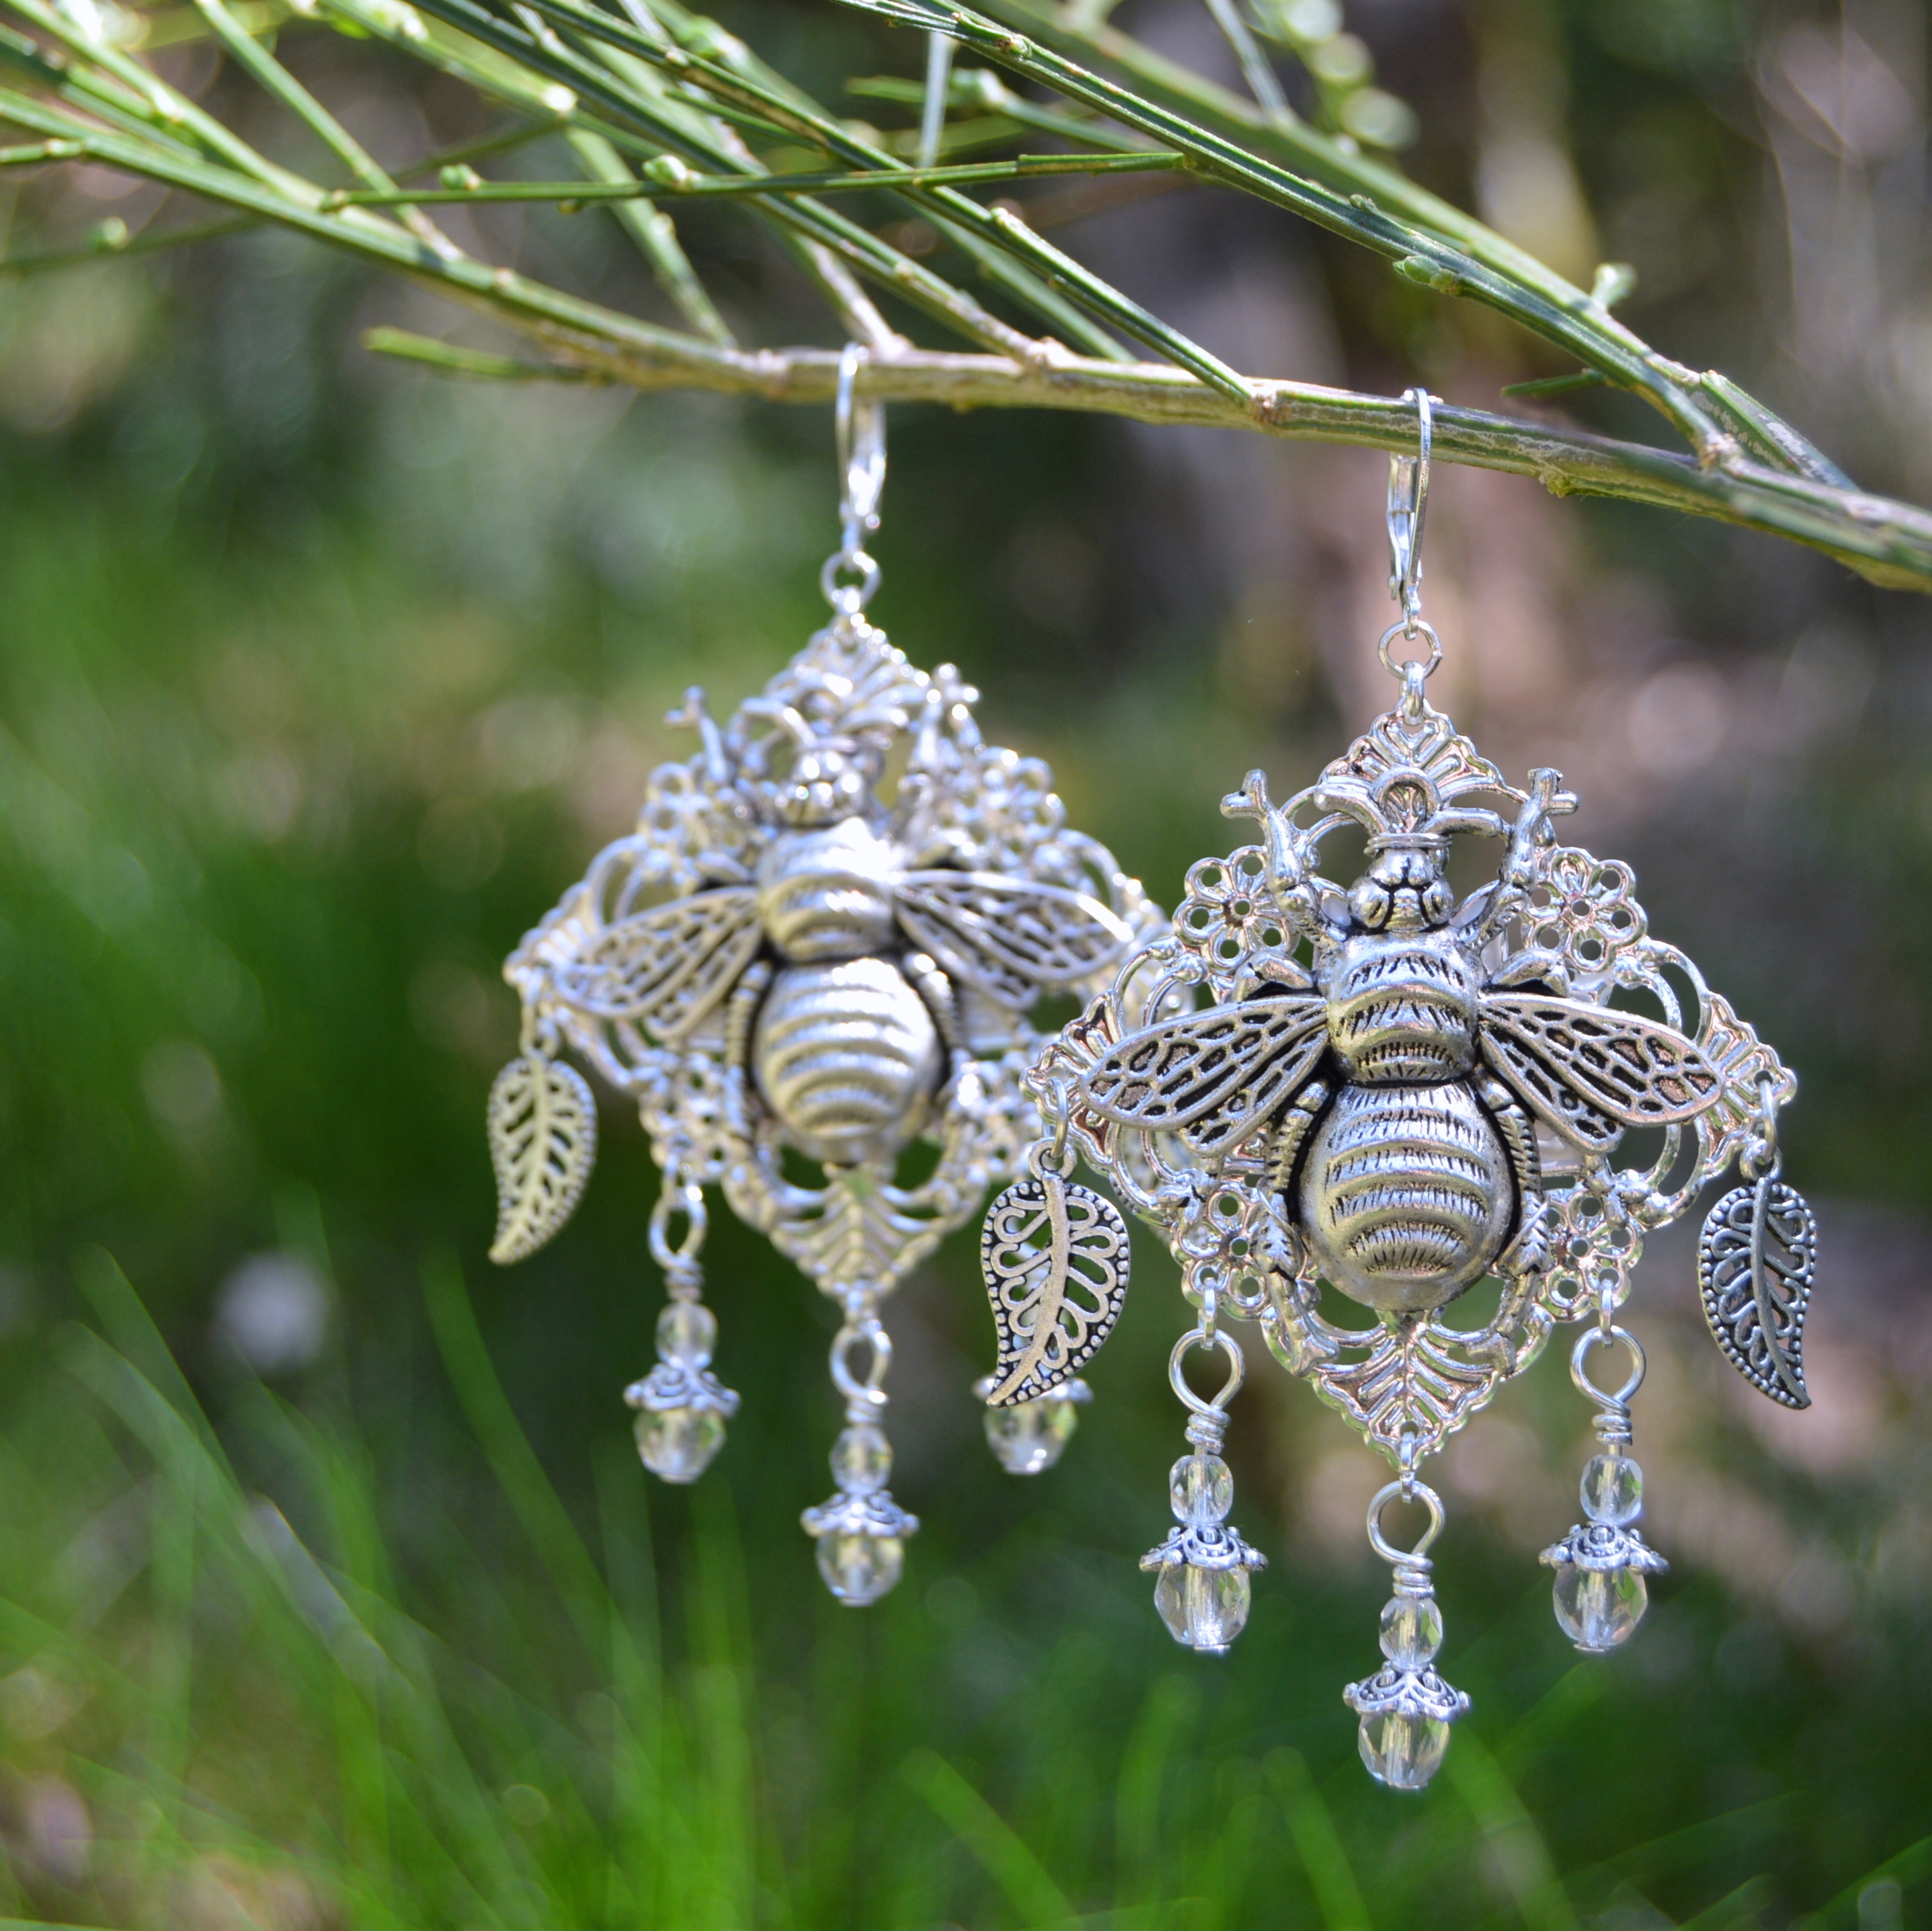 Bohemian bee earrings in silver filigree - large witchy forest earrings by herisson rose jewelry